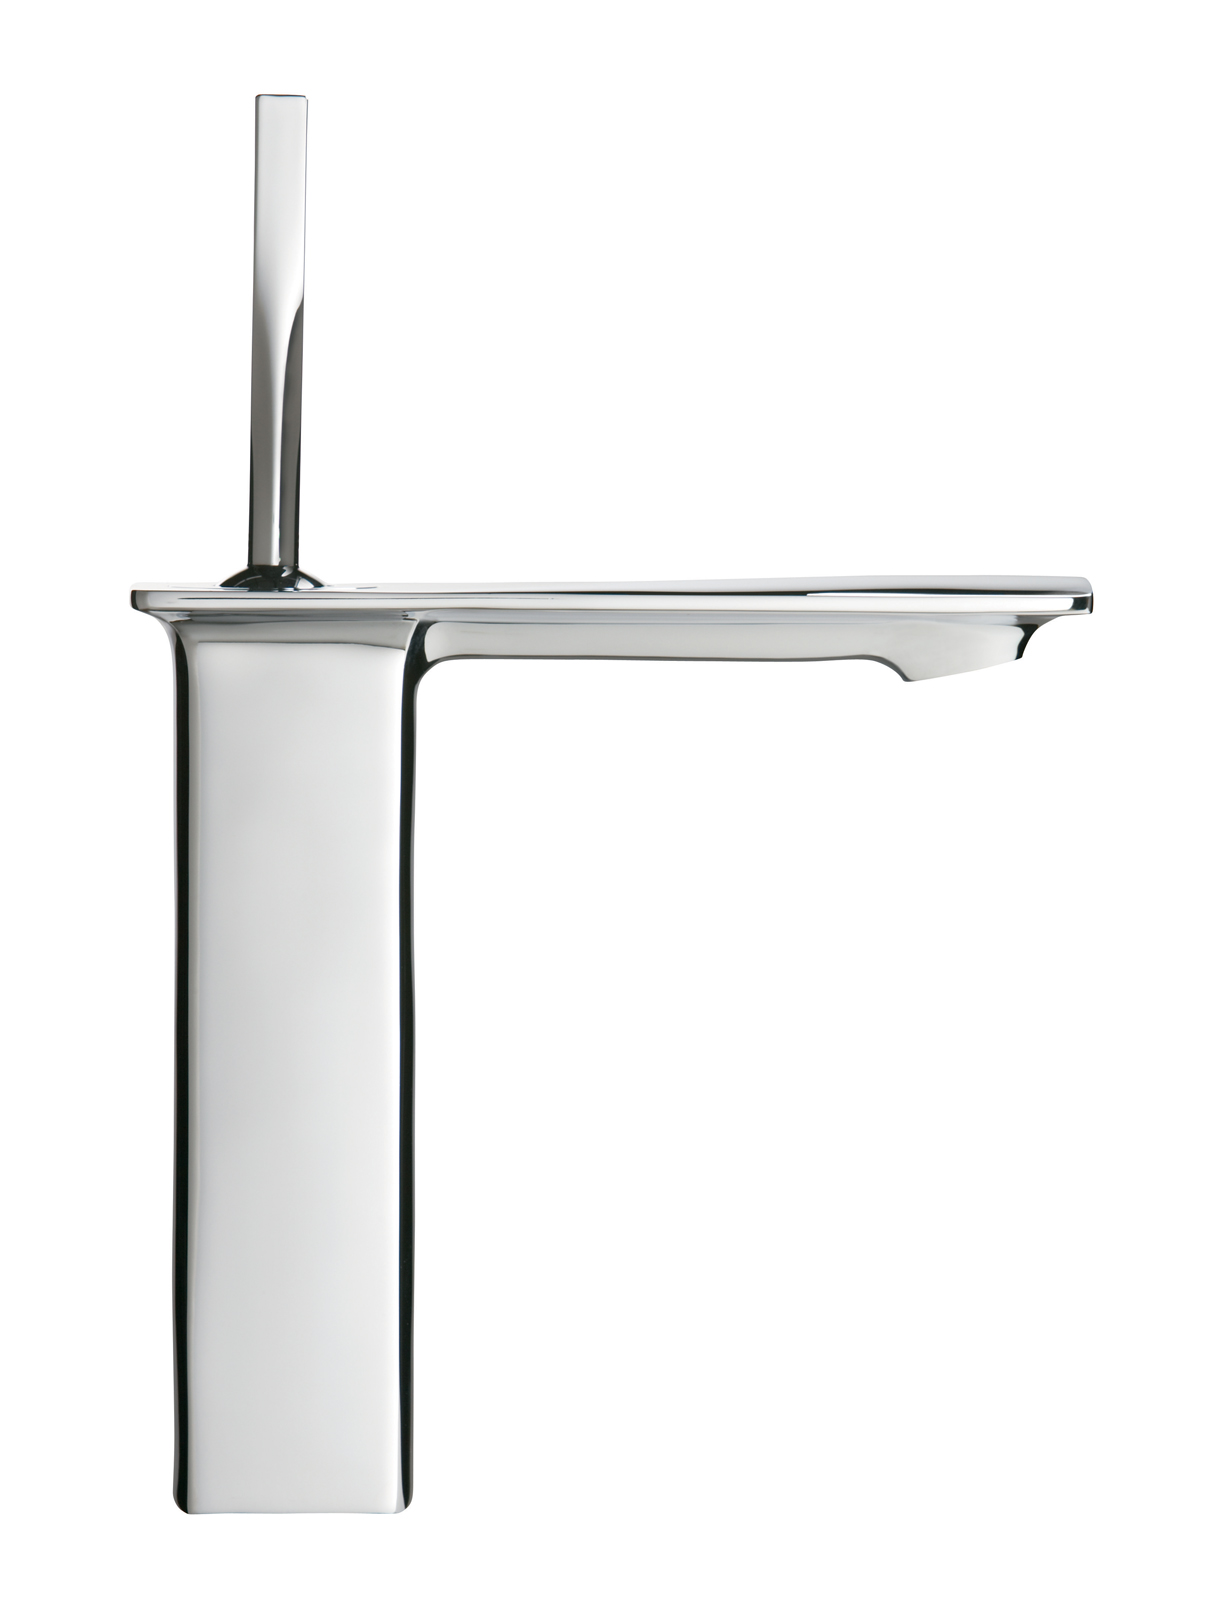 The Stance single control tall lavatory faucet by Kohler